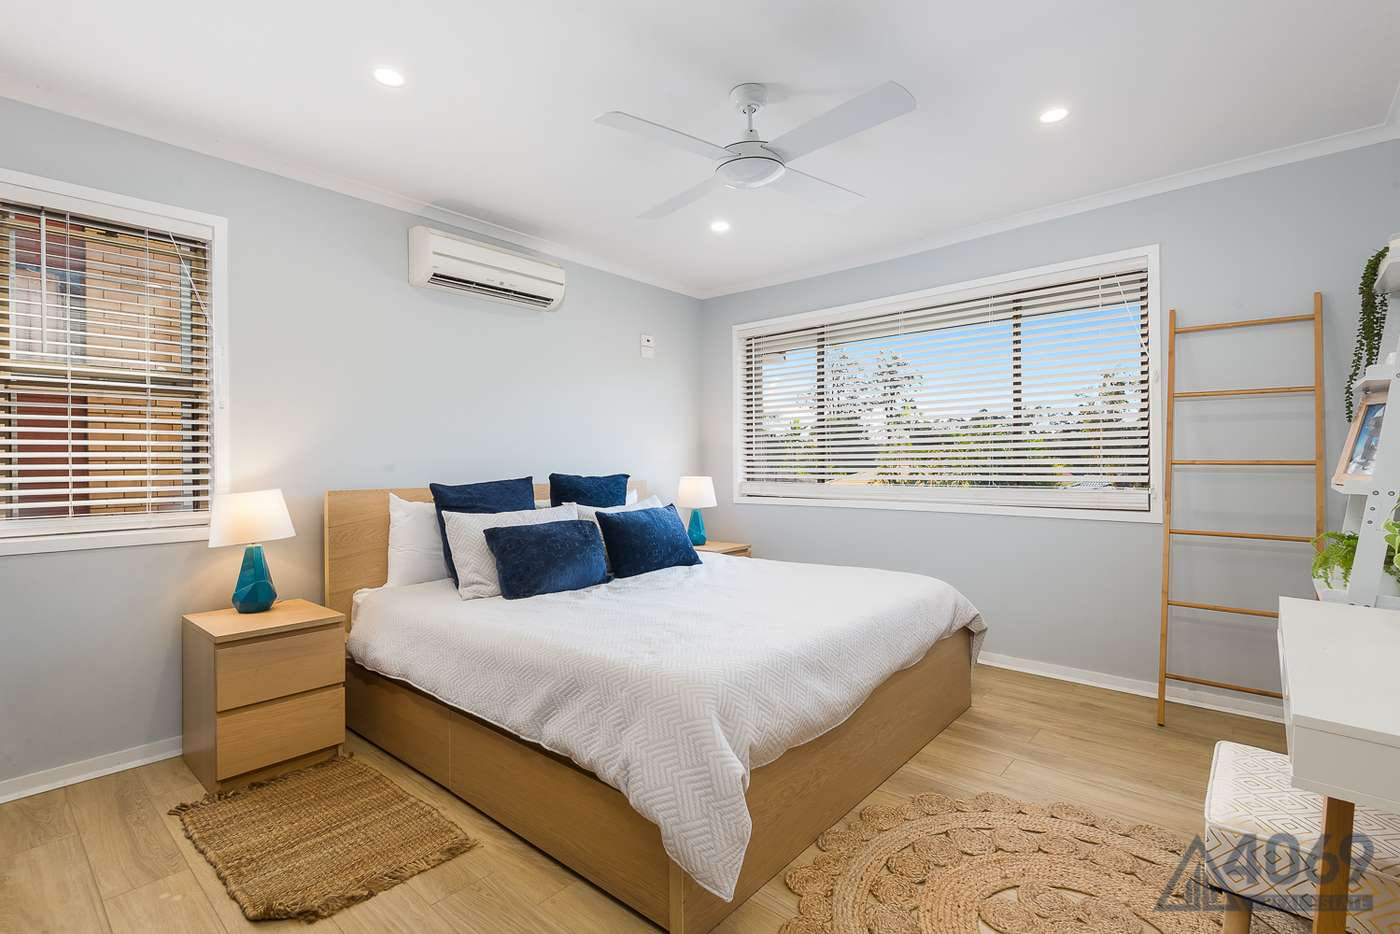 Sixth view of Homely house listing, 312 Sumners Road, Riverhills QLD 4074